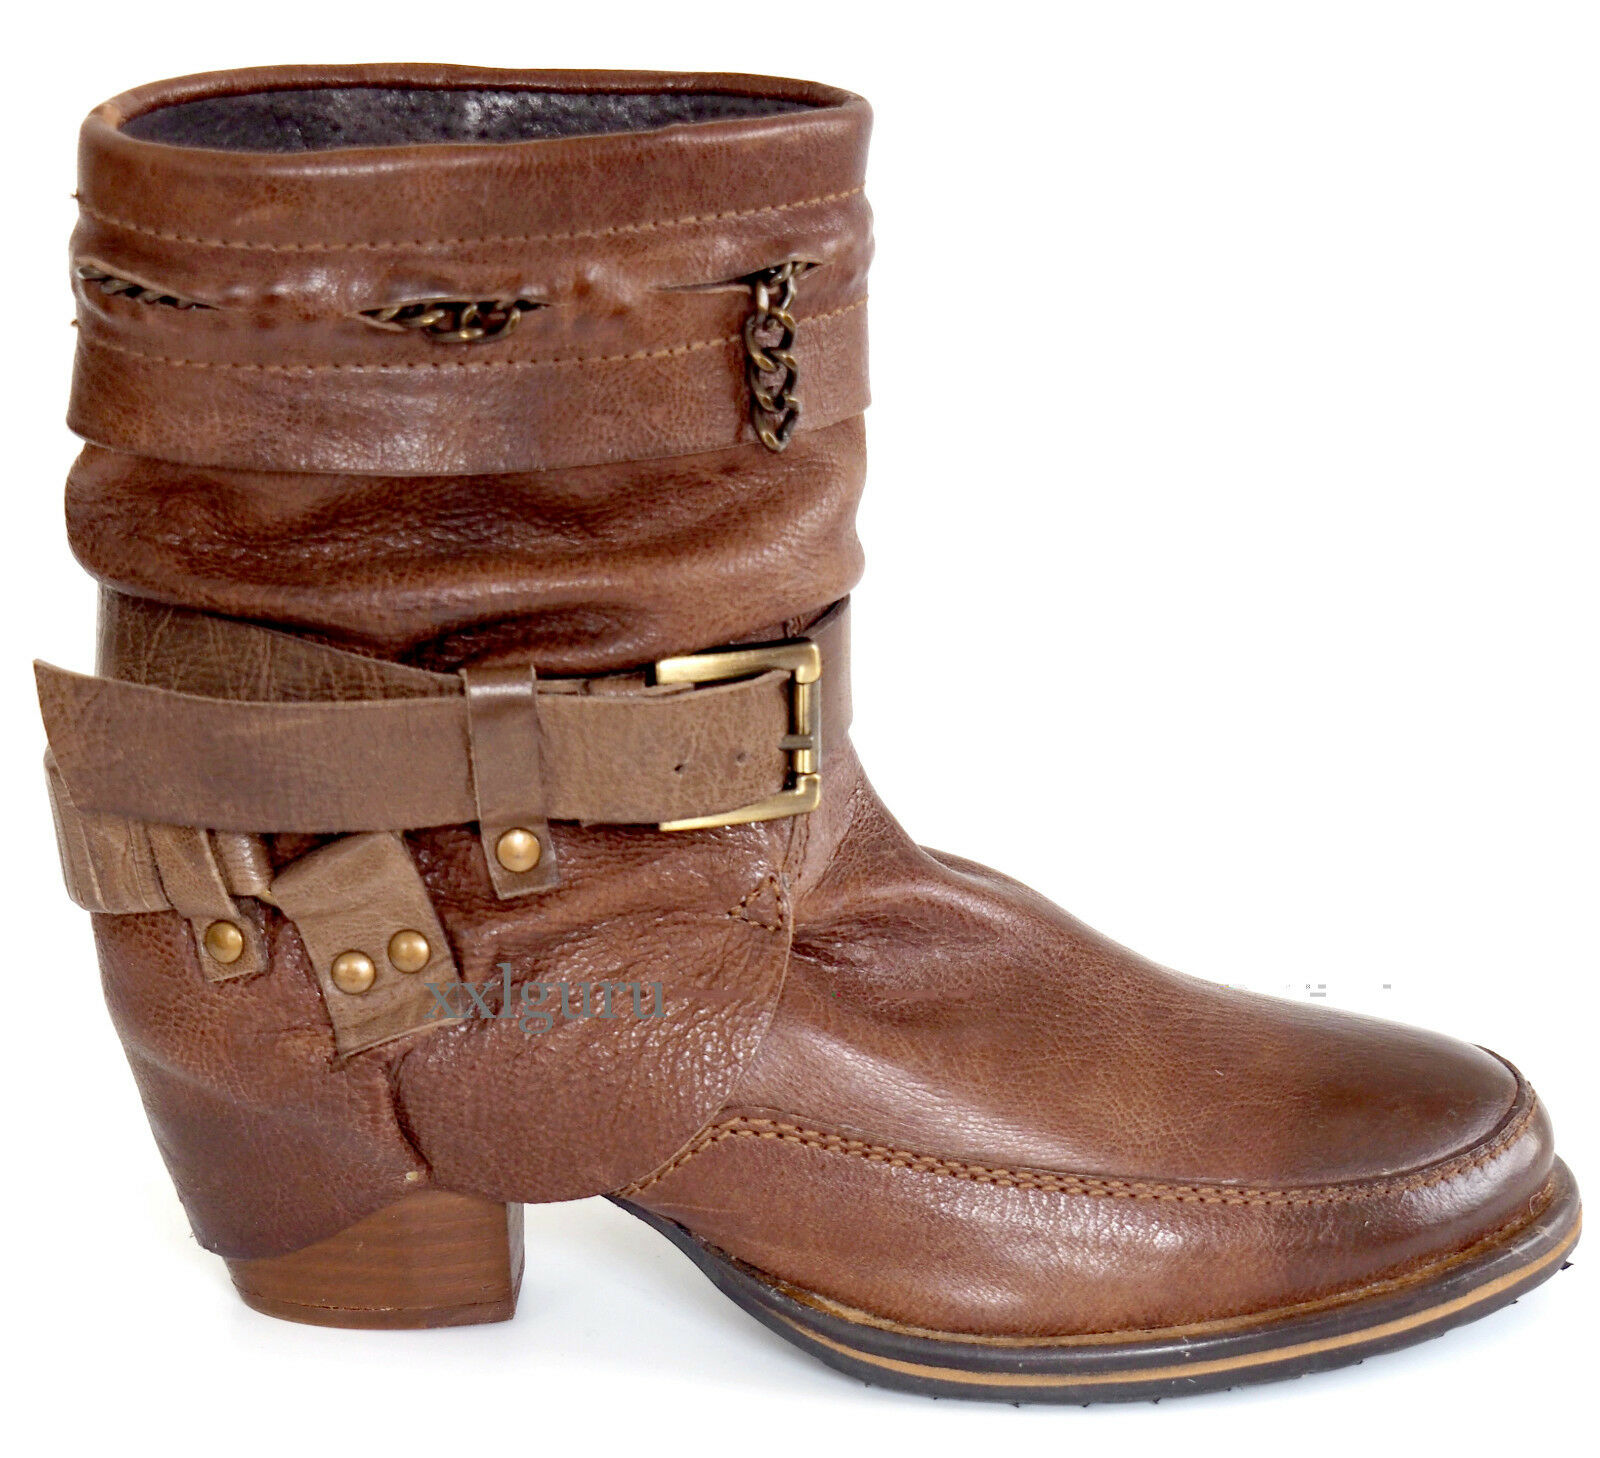 XYXYX Stiefelette 41 Nappa LEDER Cognac Gebrushed Braun Used Boots Schnale NEU